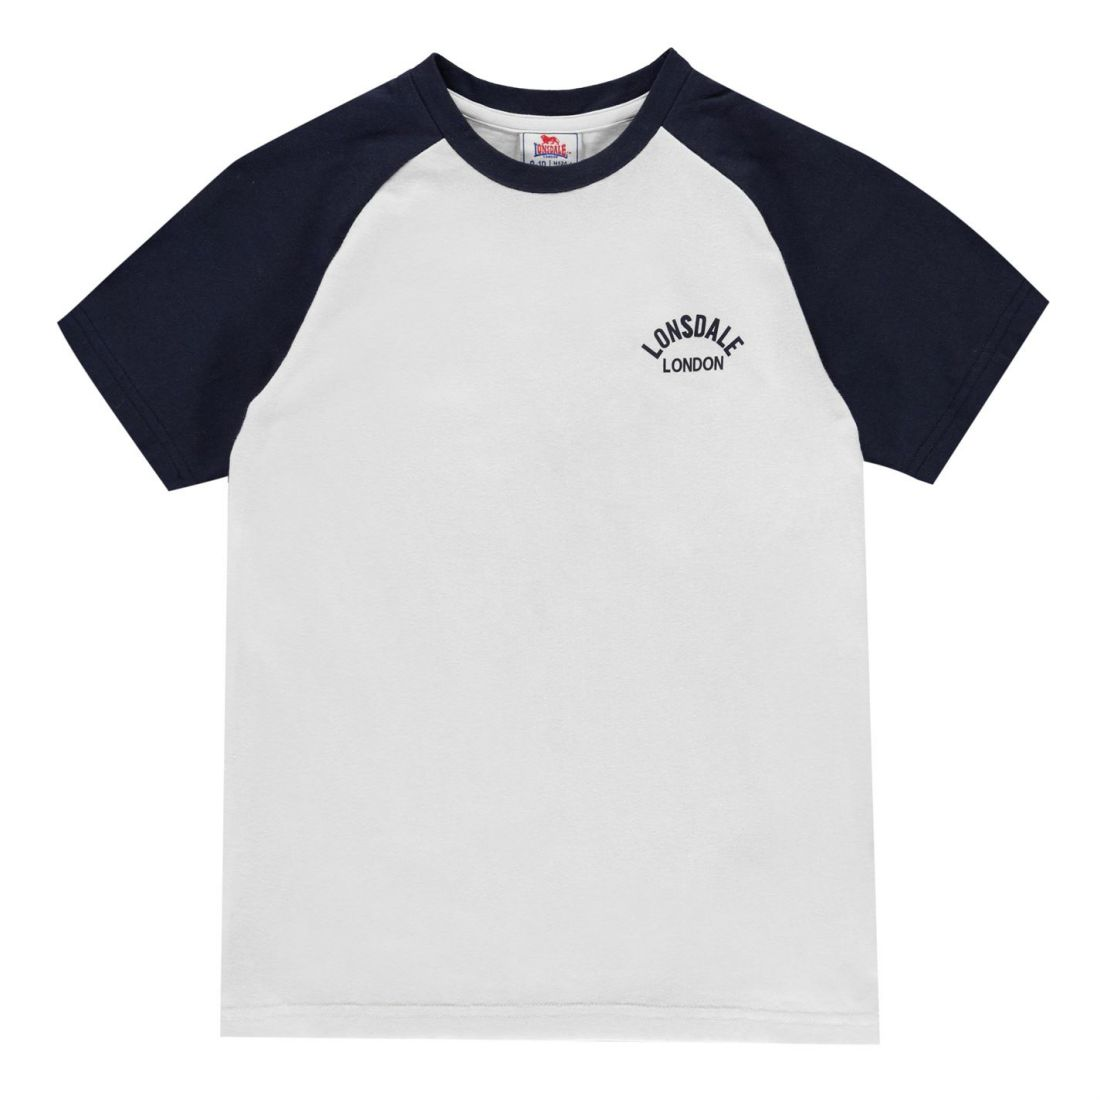 40d4c43bb8788 Lonsdale Kids Boys Raglan T Shirt Junior Crew Neck Tee Top Short ...